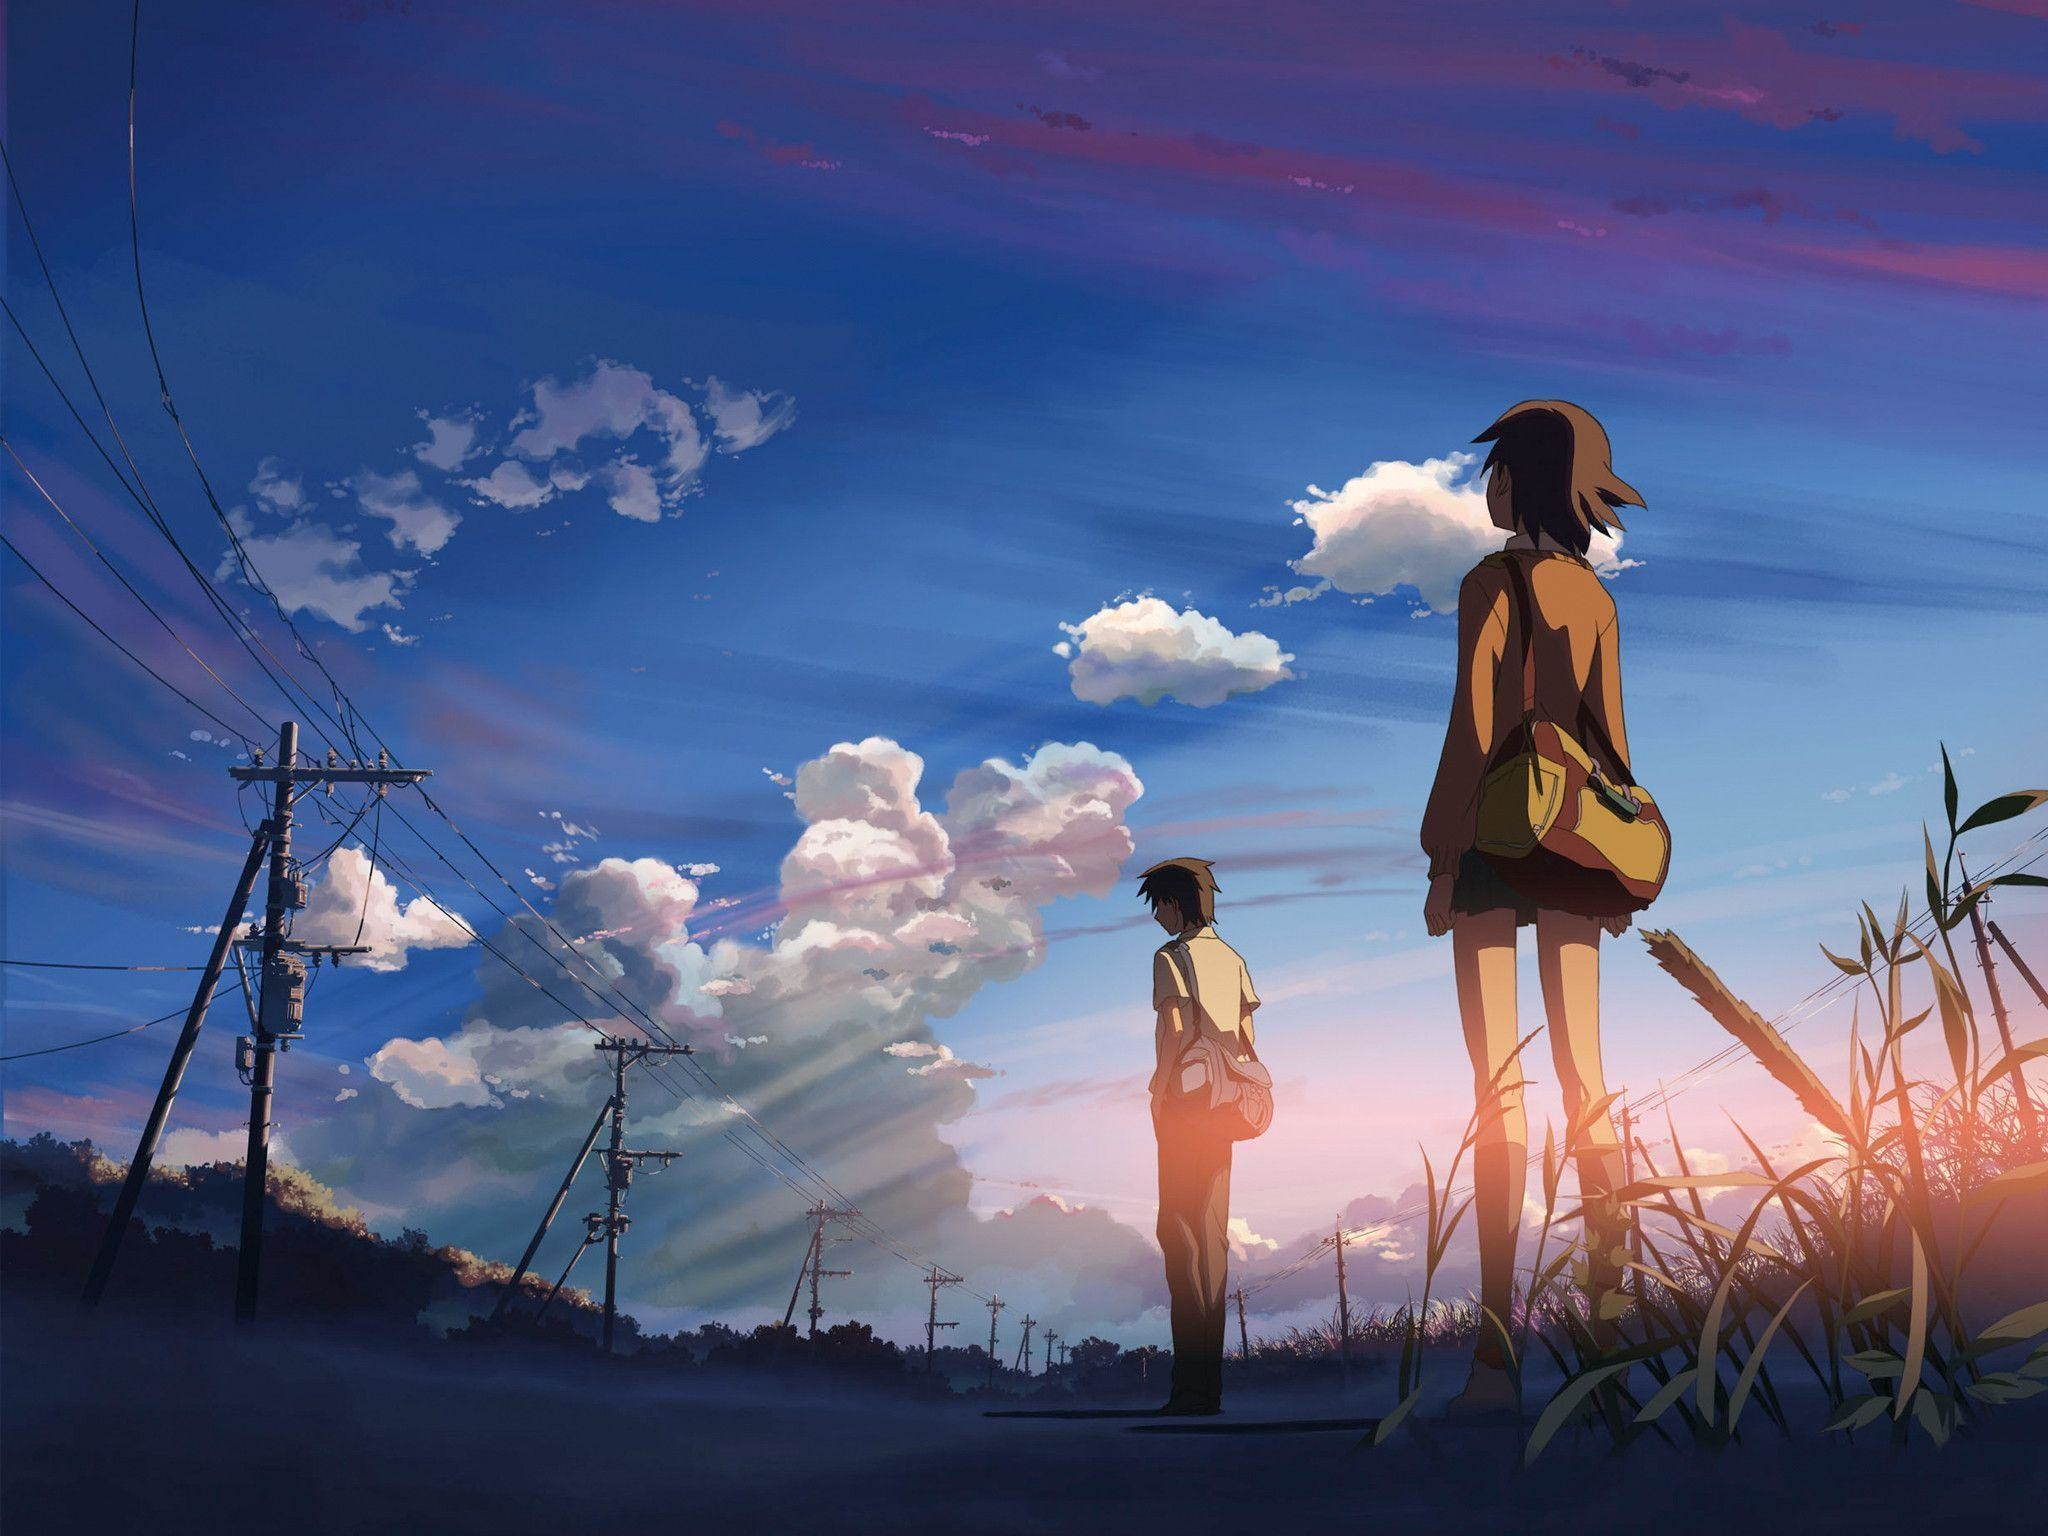 2048x1536 76 5 Centimeters Per Second Wallpapers | 5 Centimeters Per Second .